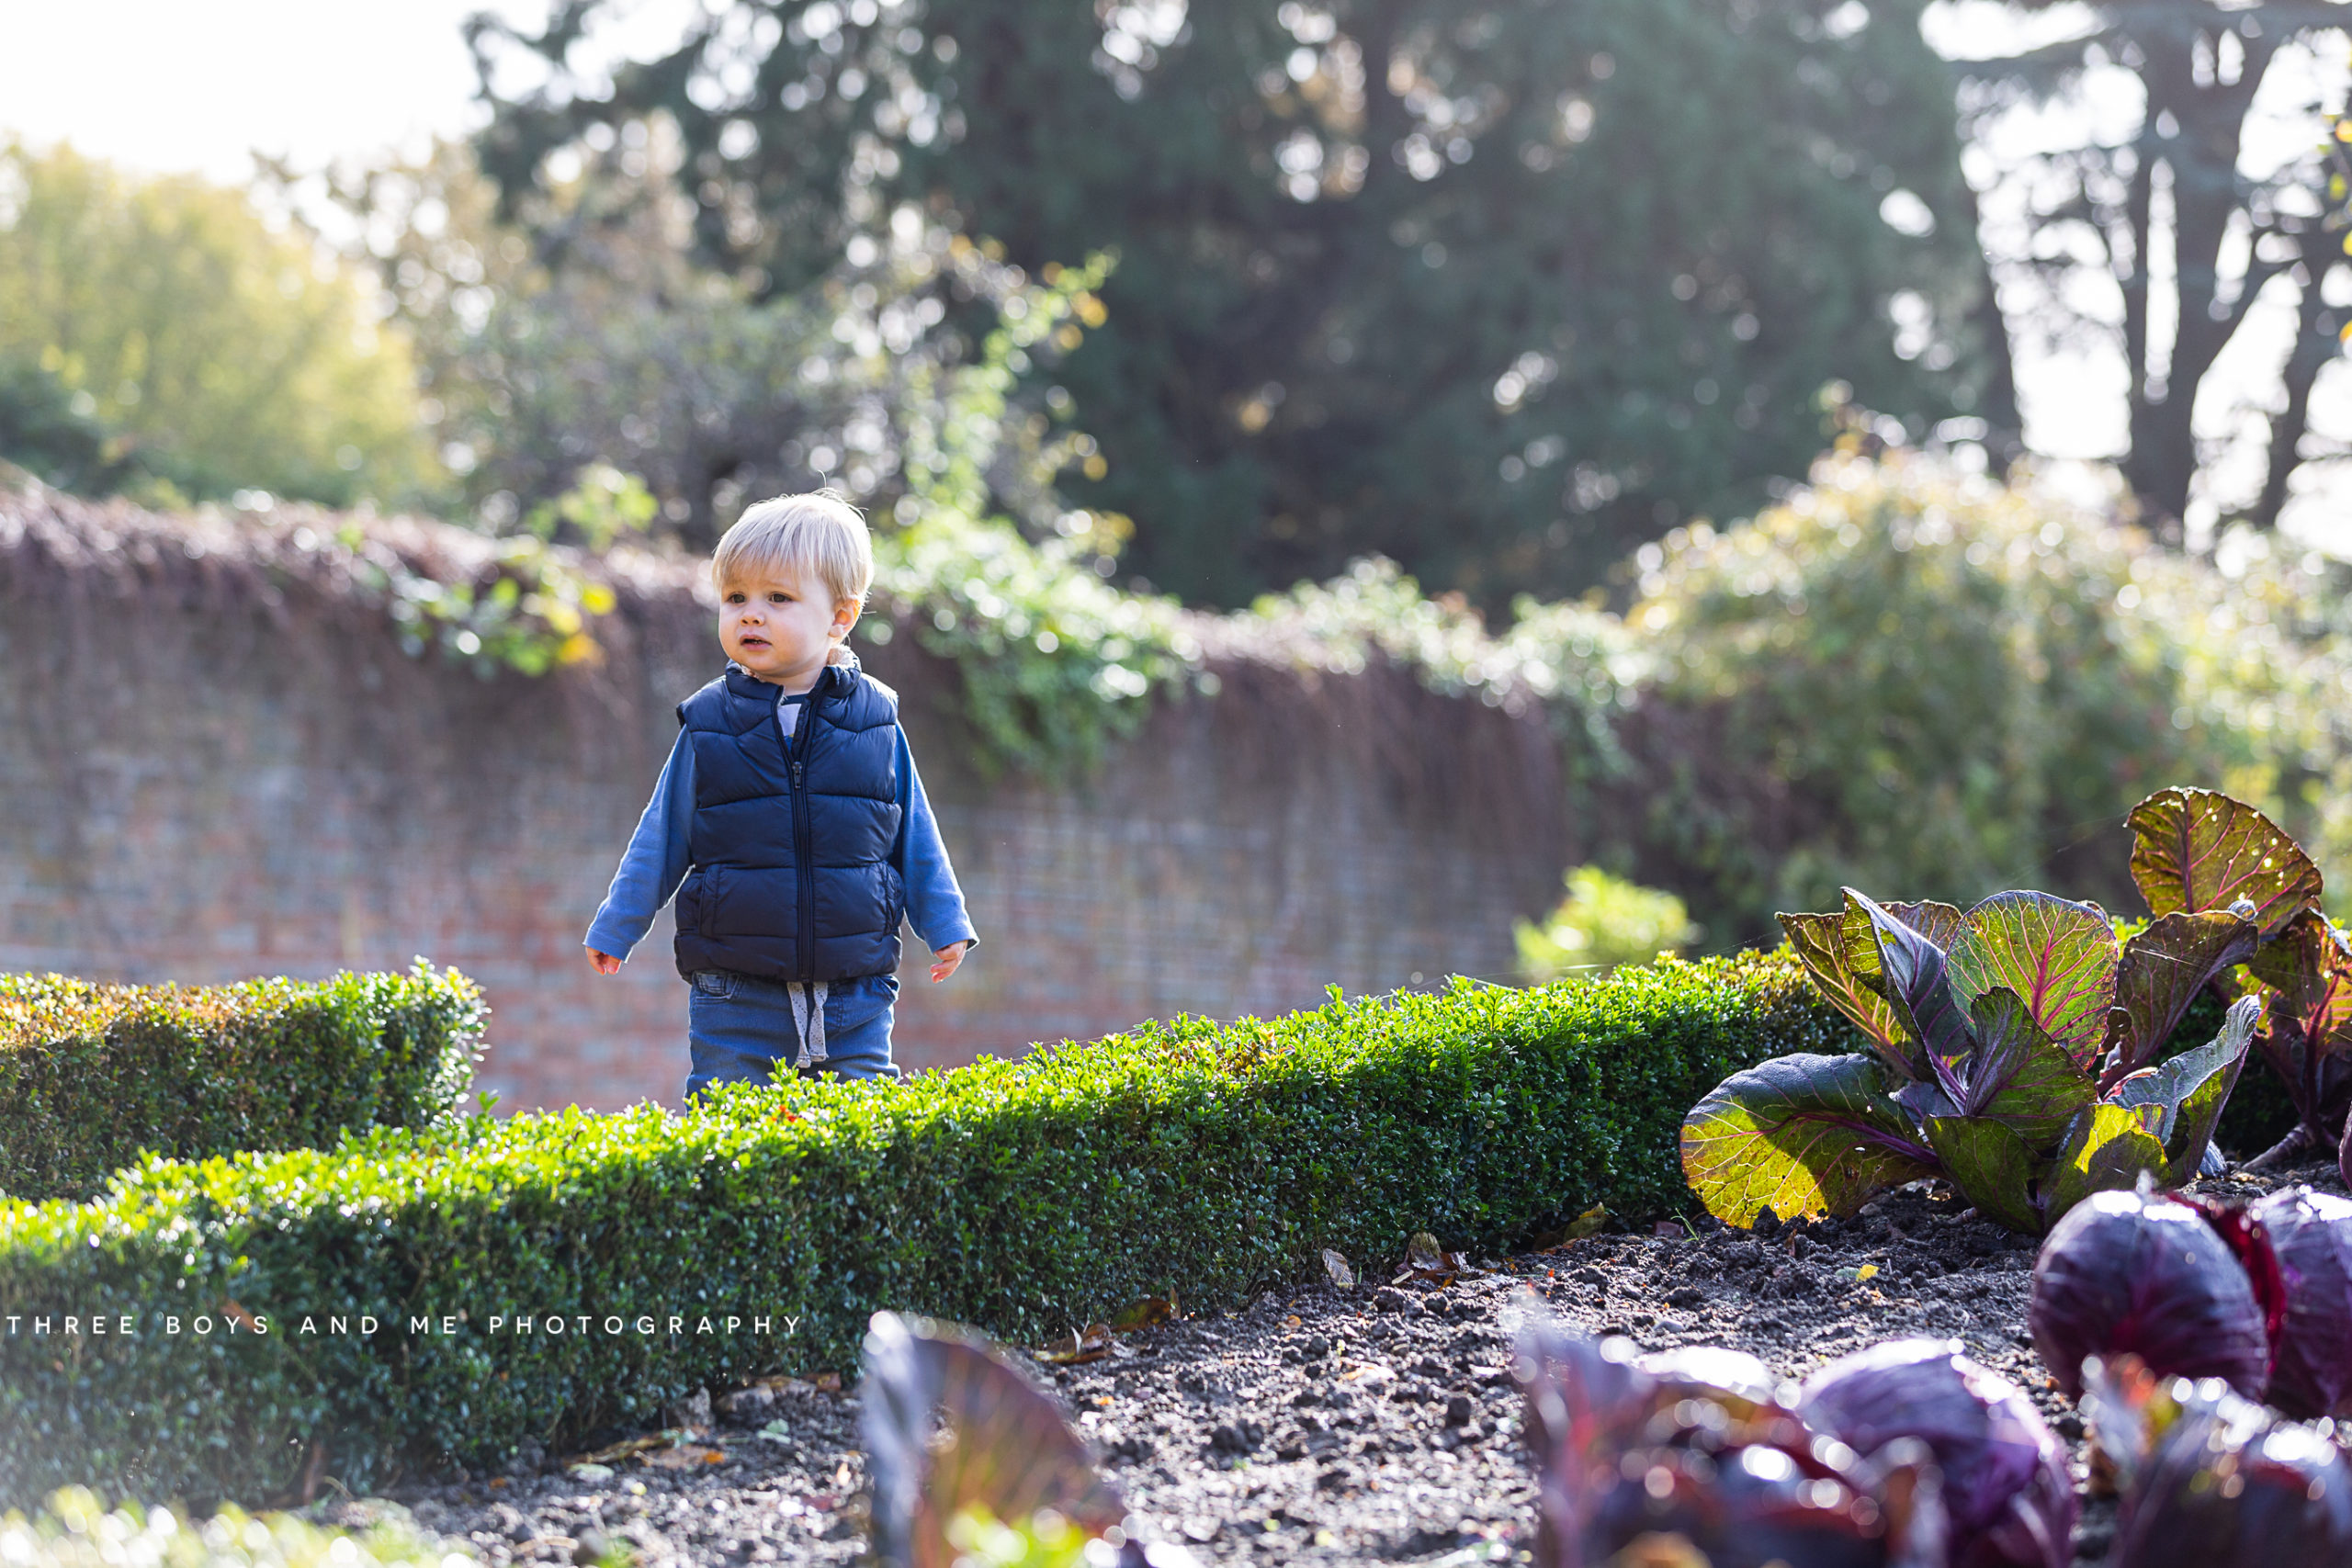 Autumn Mini Shoots 2019 at Riverhill Himalayan Gardens in Sevenoaks 2020 booking now open.